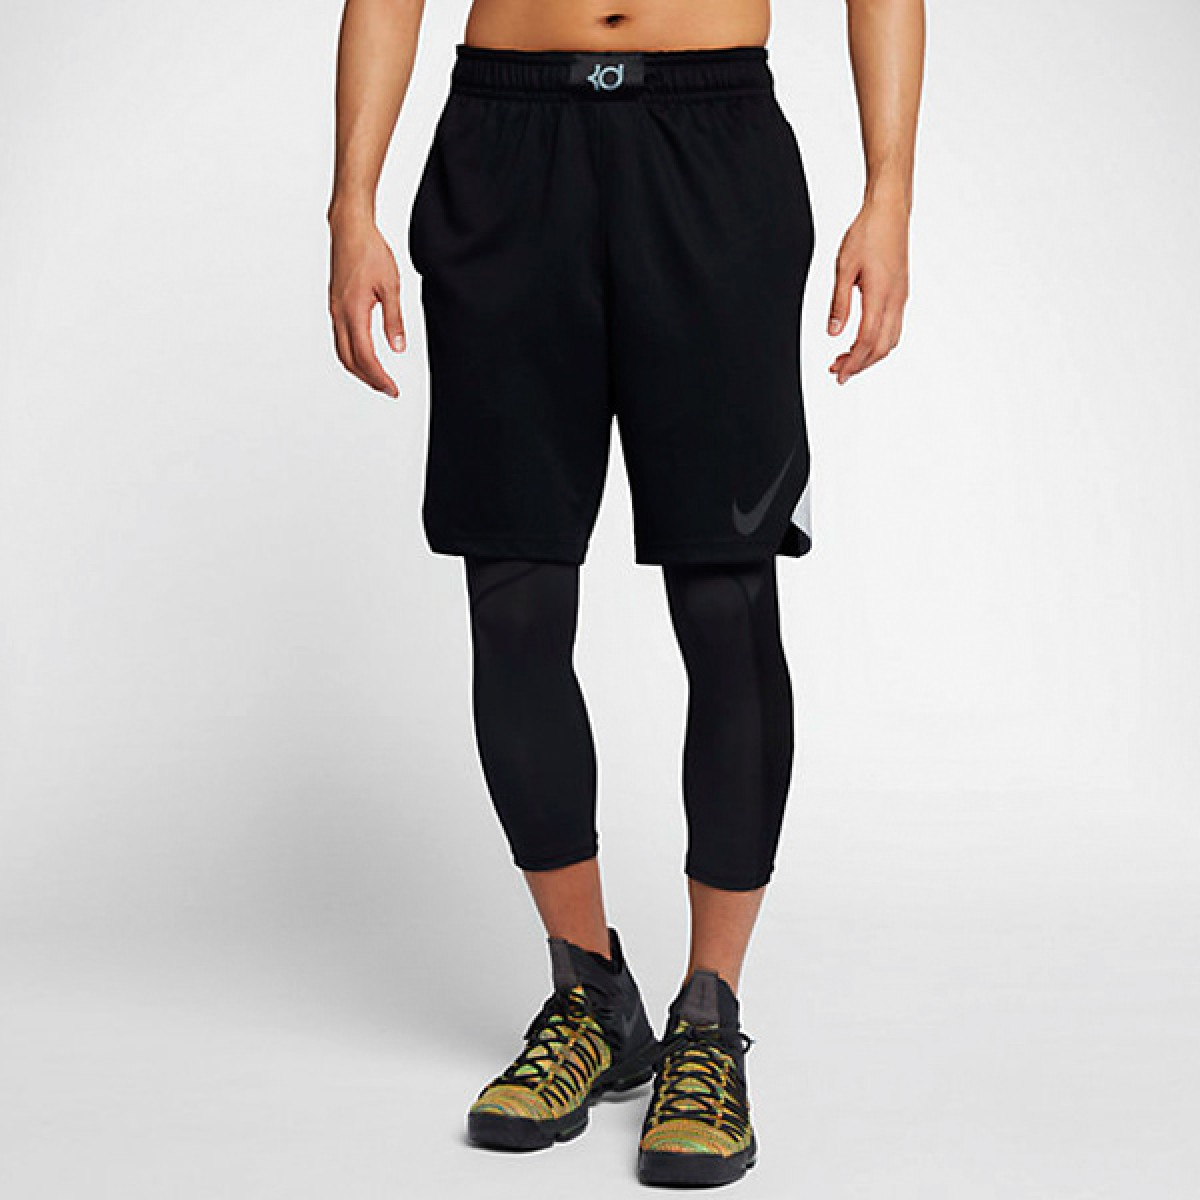 Nike KD Elite Short 'Black'